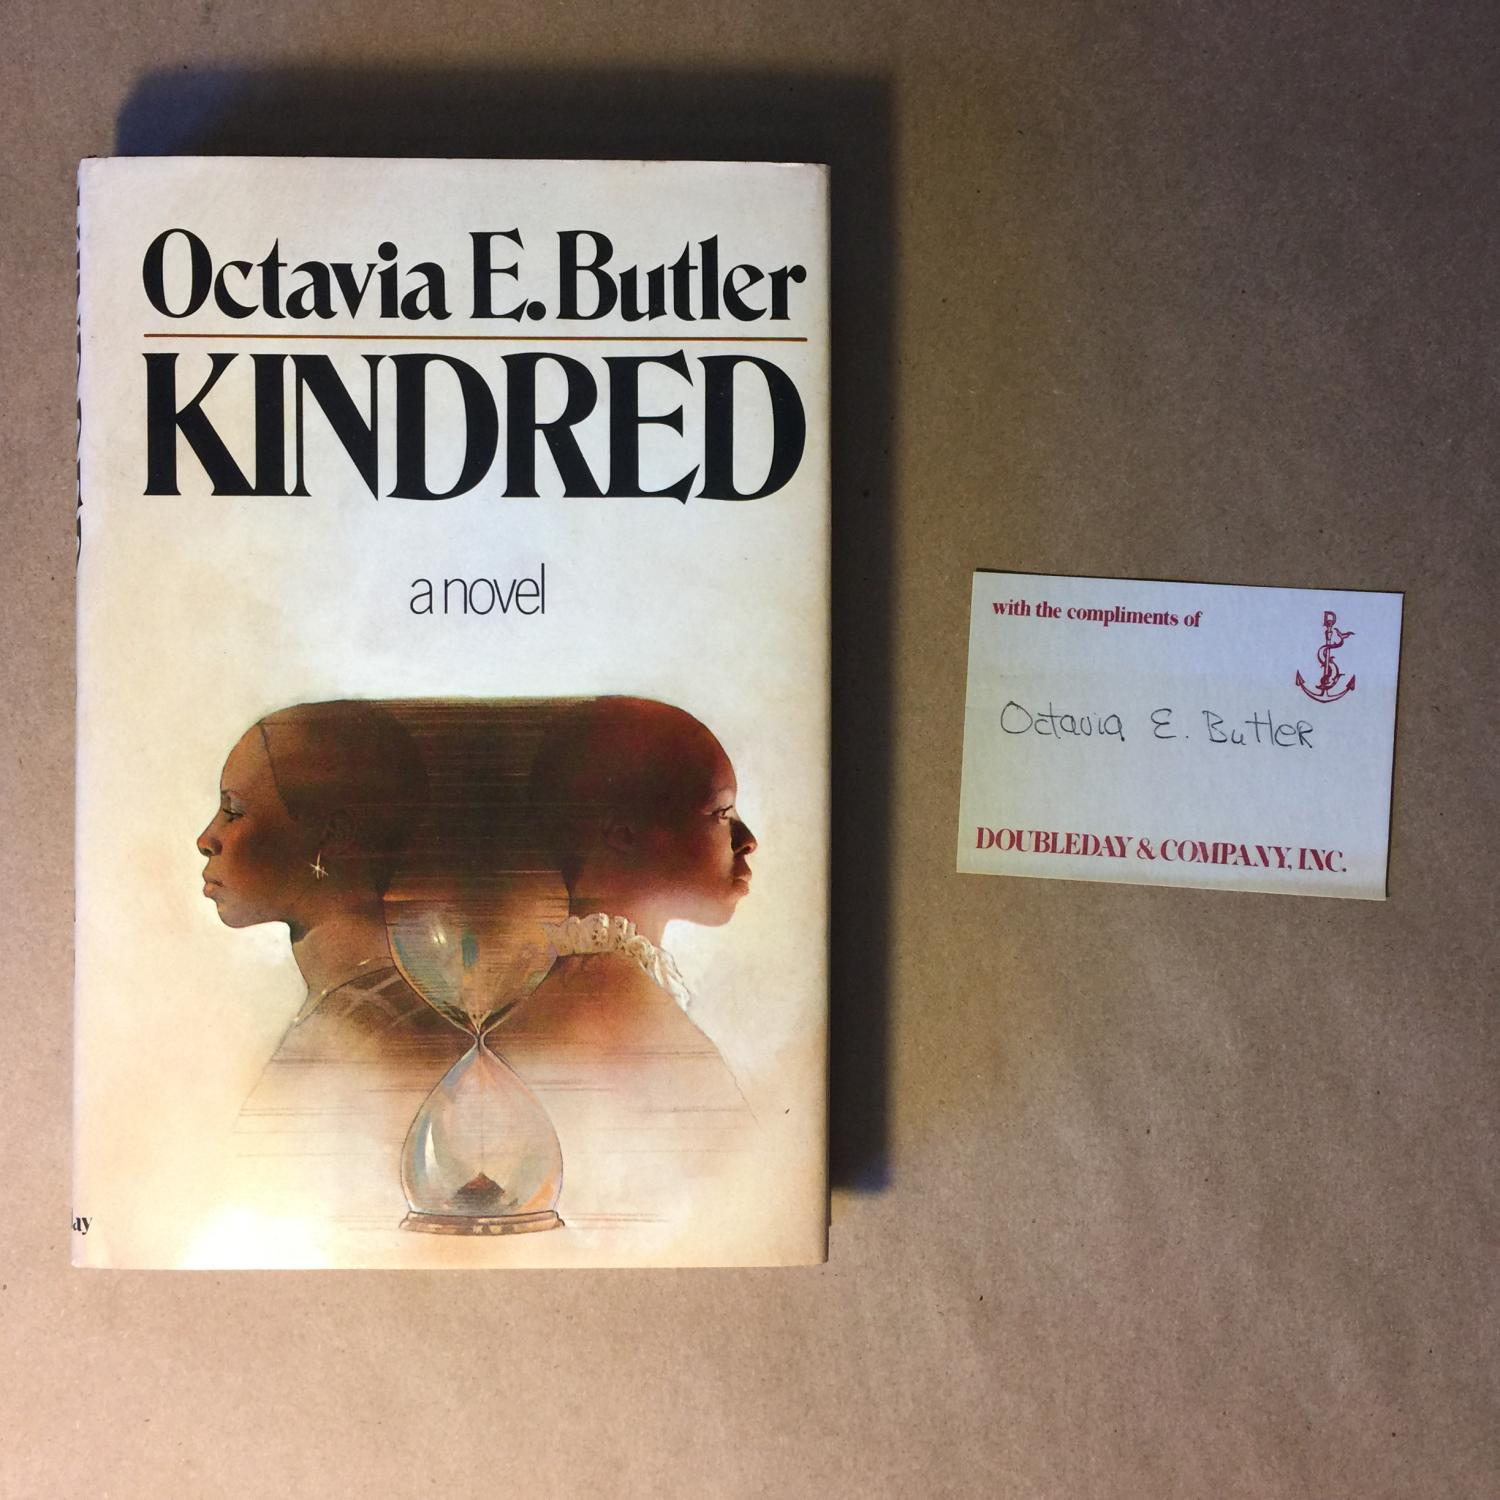 essay on kindred octavia butler Essay ideas, study questions and discussion topics based on important themes running throughout kindred by octavia e butler great supplemental information for school essays and homework projects.